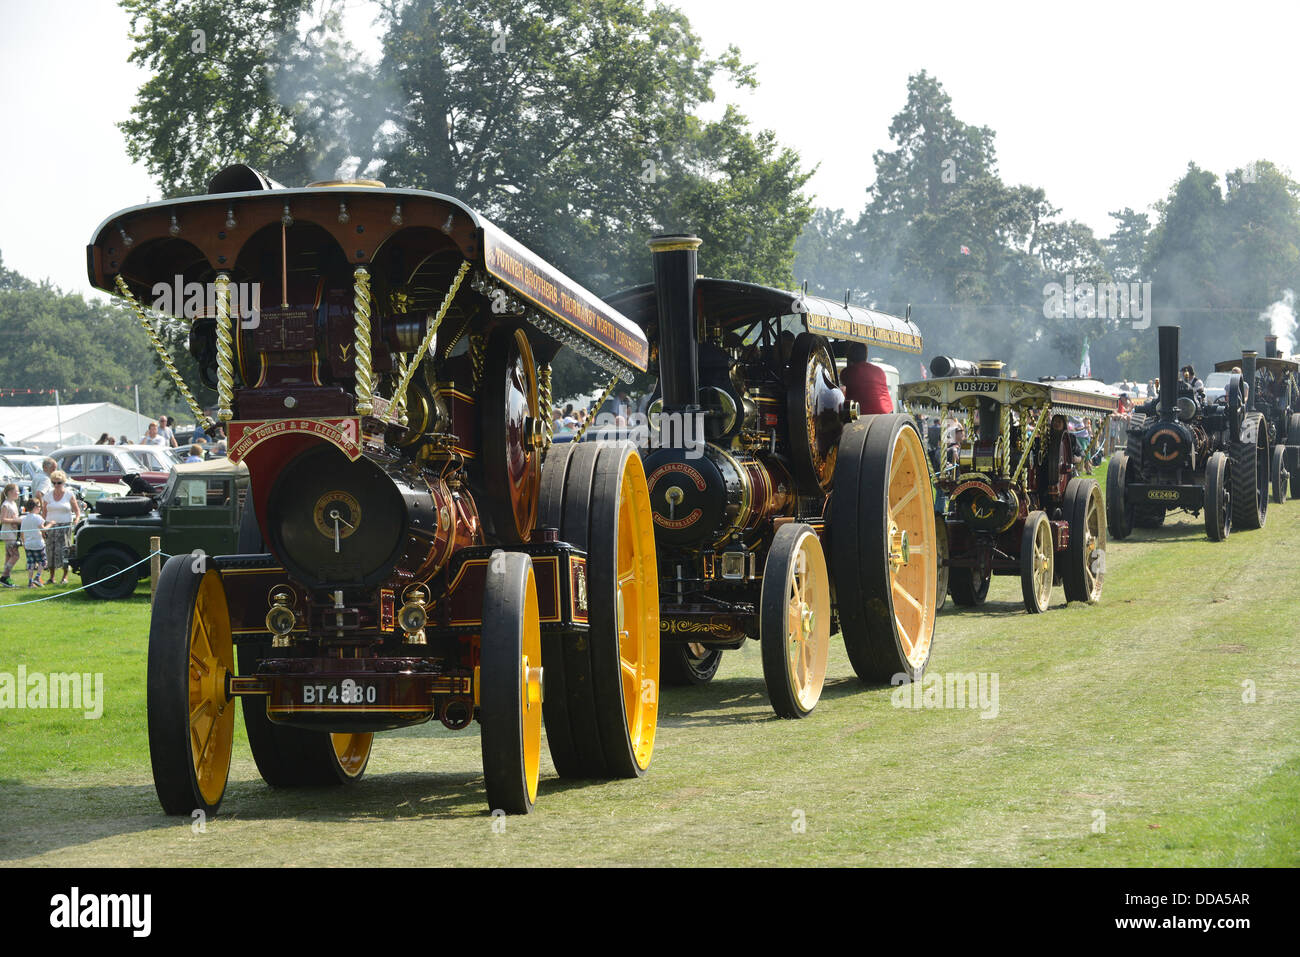 Parade of traction engines at Steam Rally show Shrewsbury 2013 - Stock Image